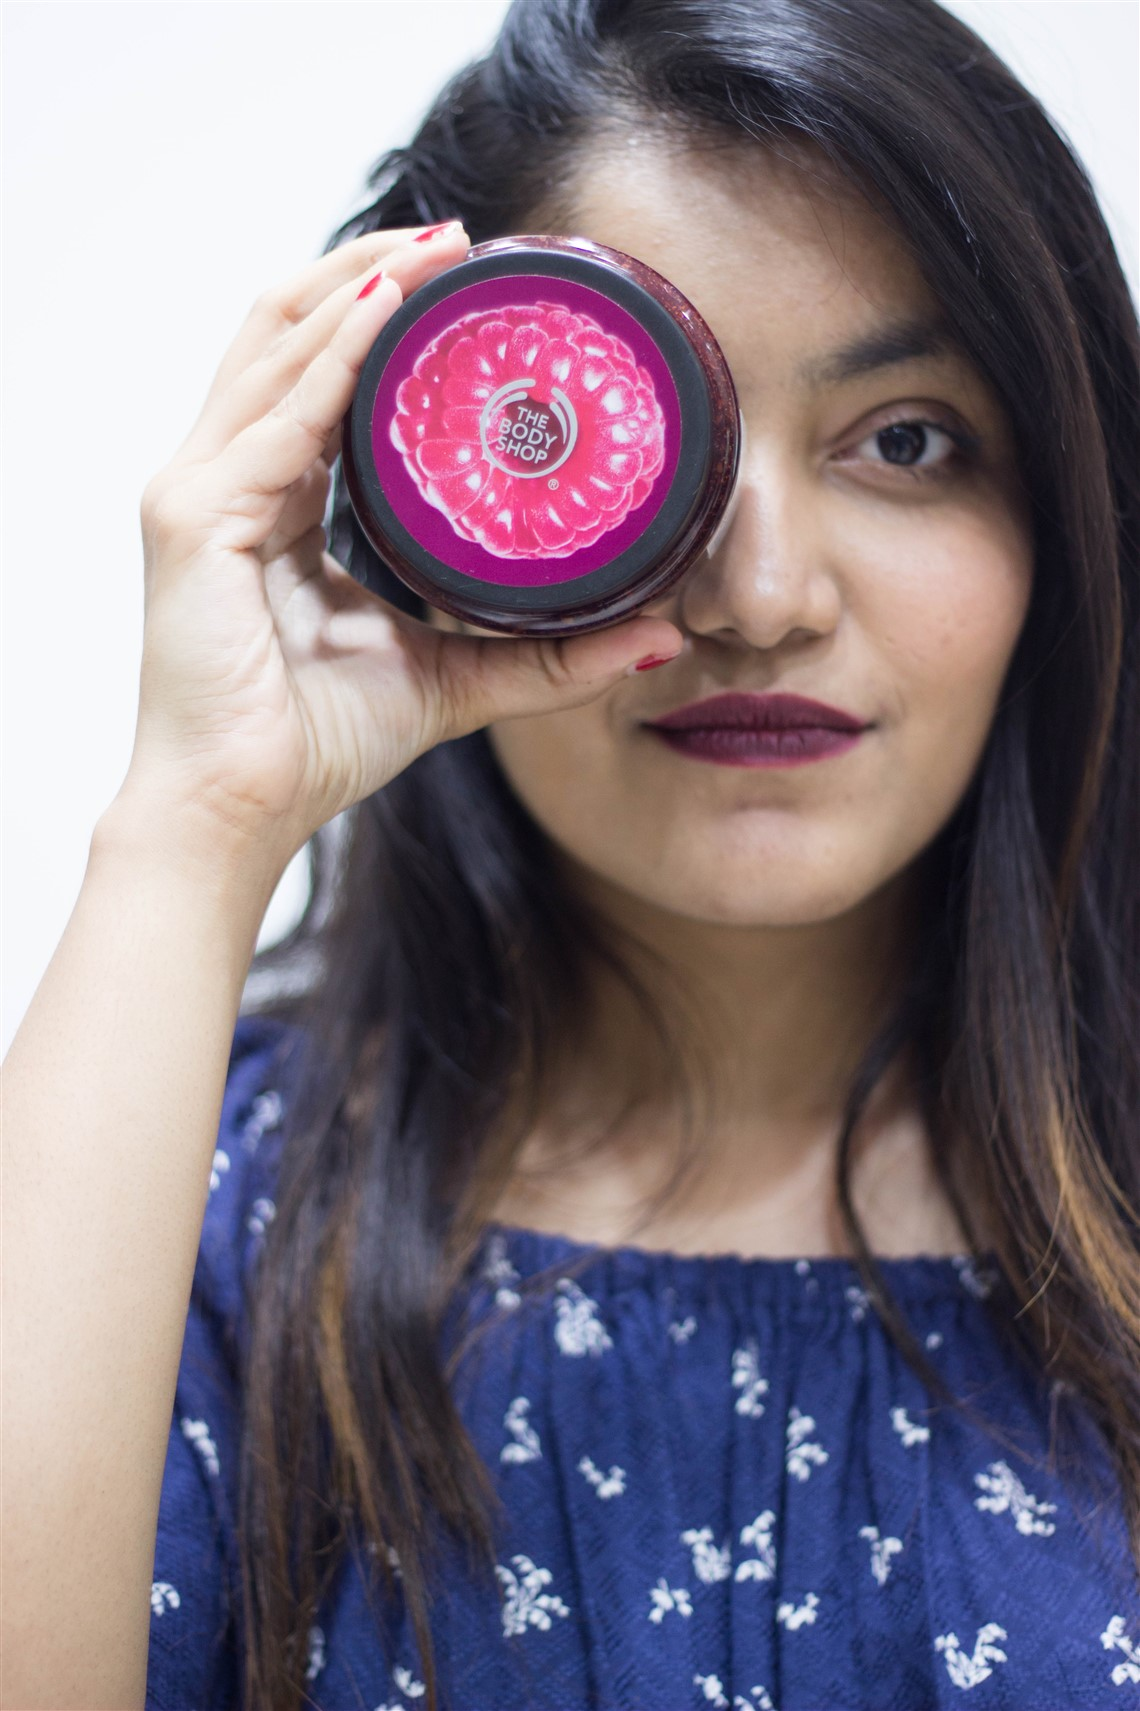 beauty blogger princy mascarenhas of the jeromy diaries for the body shop india